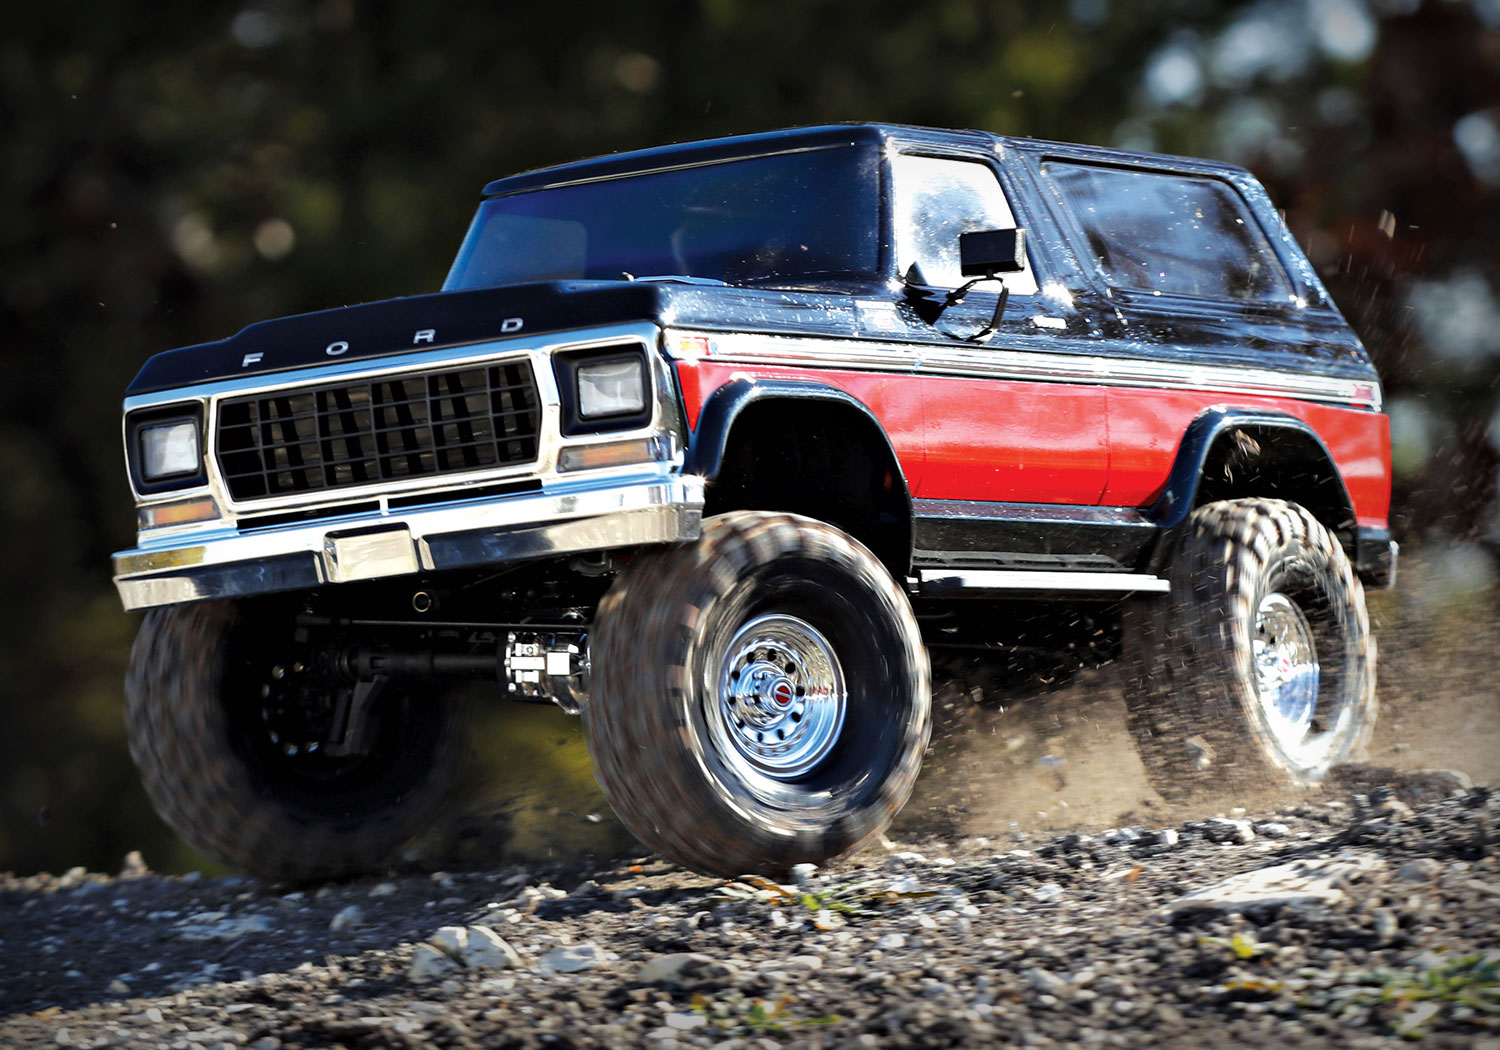 Traxxas Trx 4 Bronco Scale And Trail Crawler 4x4 Rc Truck 1970 Ford Lifted In Action